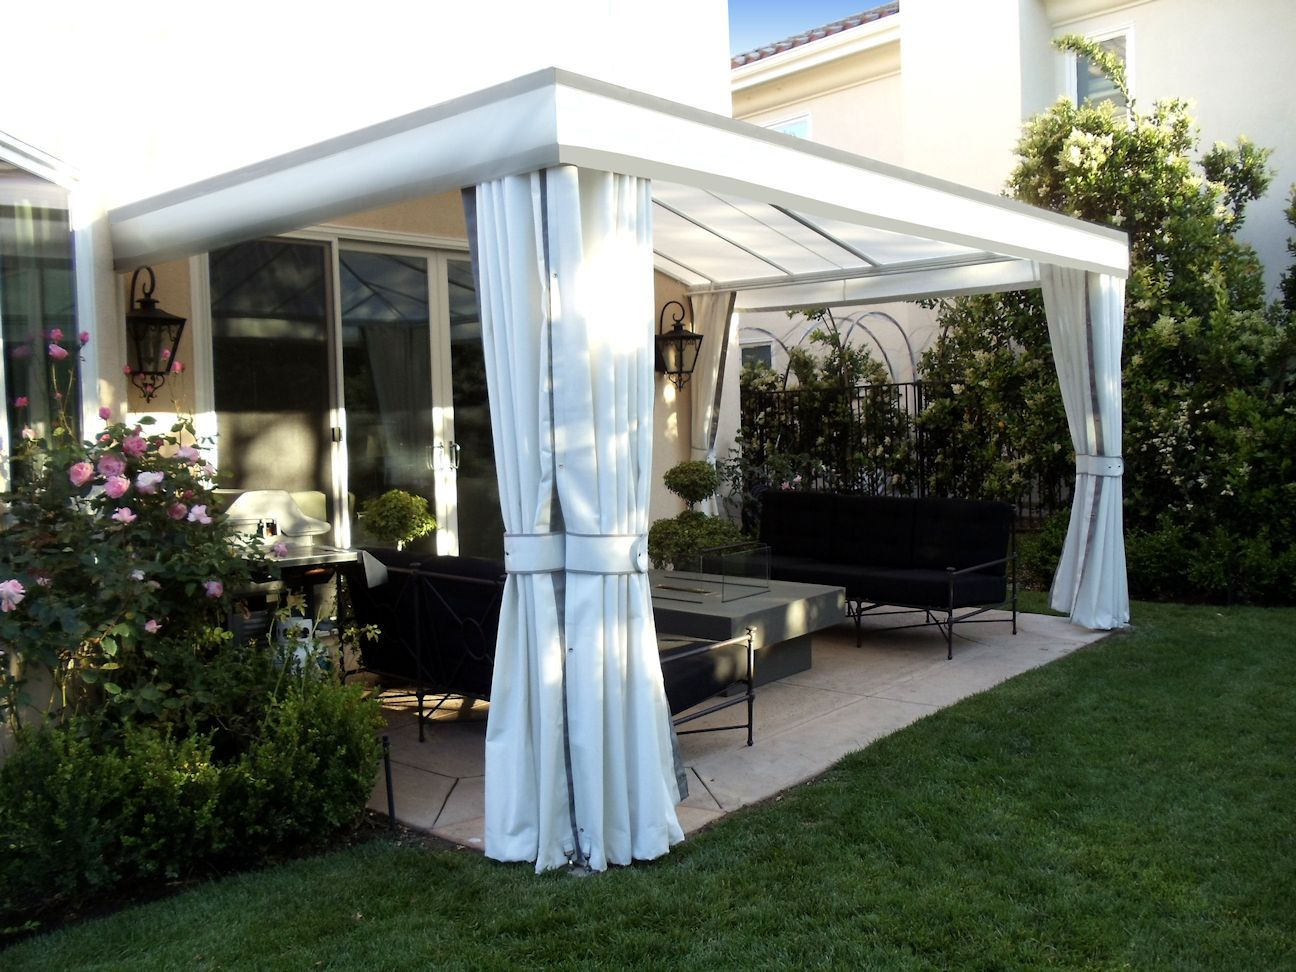 rods outdoortains attachment panels curtain unique outdoor of for porchtain at patio walmart drapes